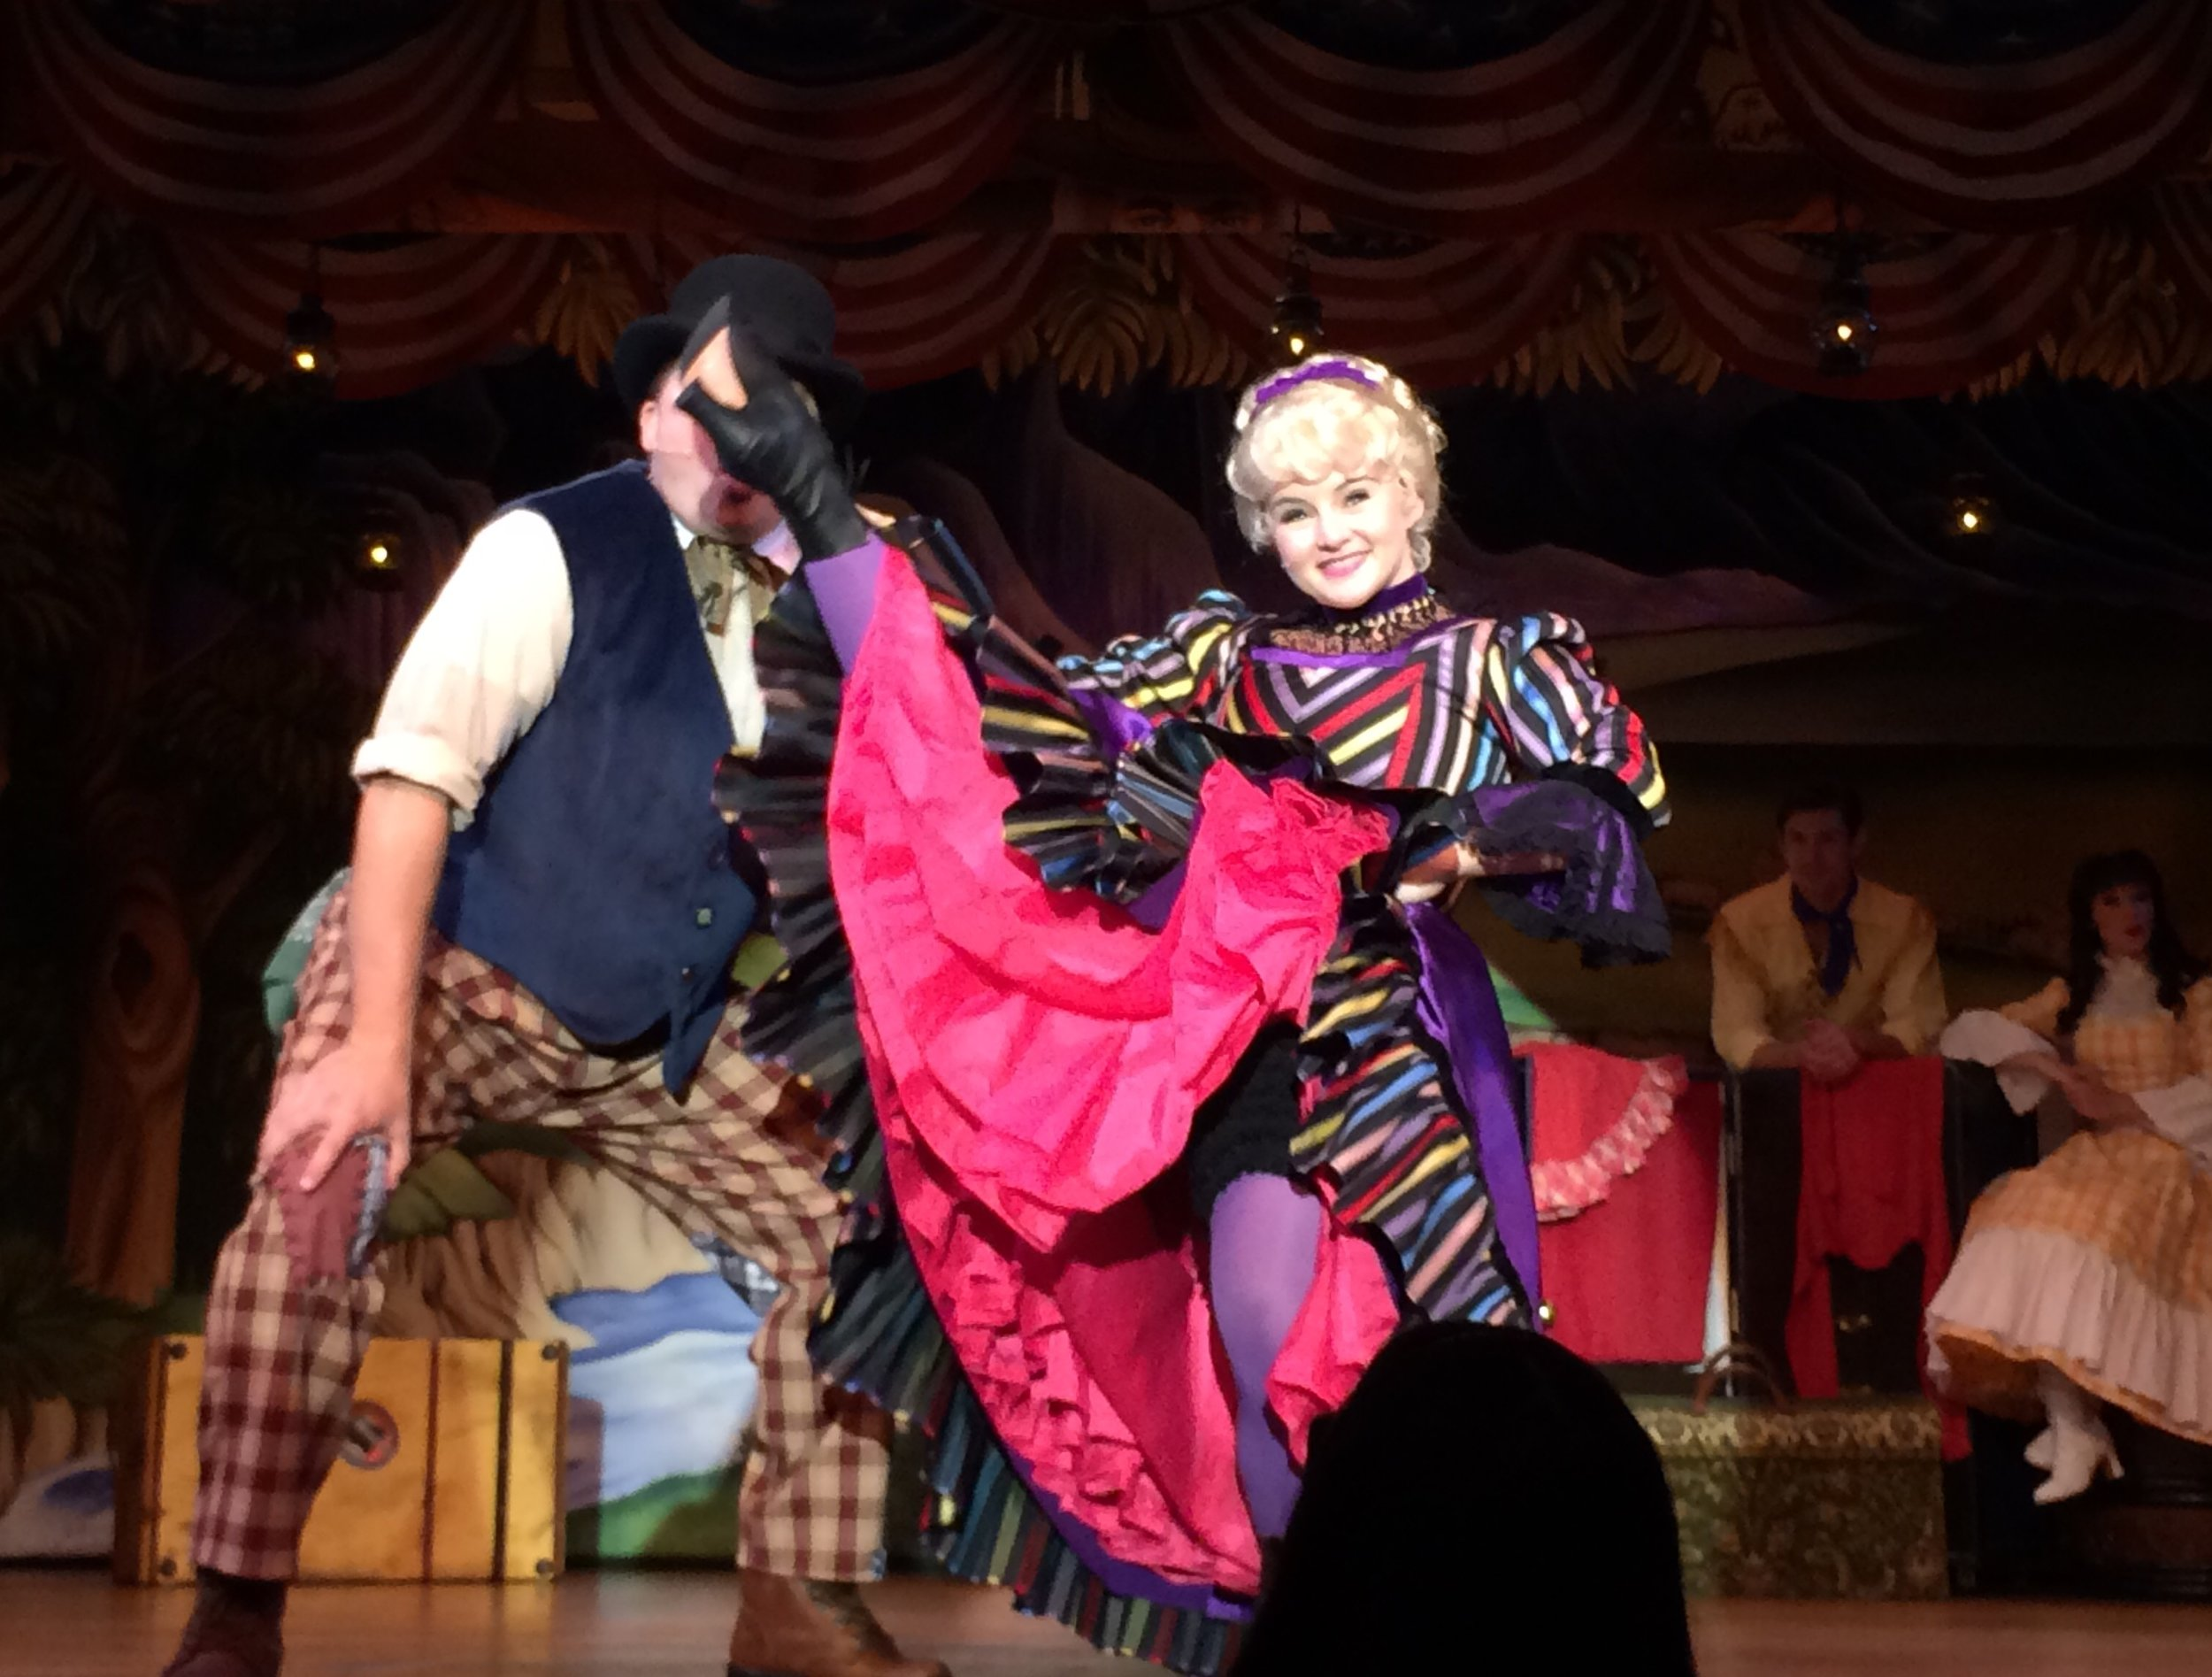 Claire DeLune,  The Hoop Dee Doo Revue , Walt Disney World